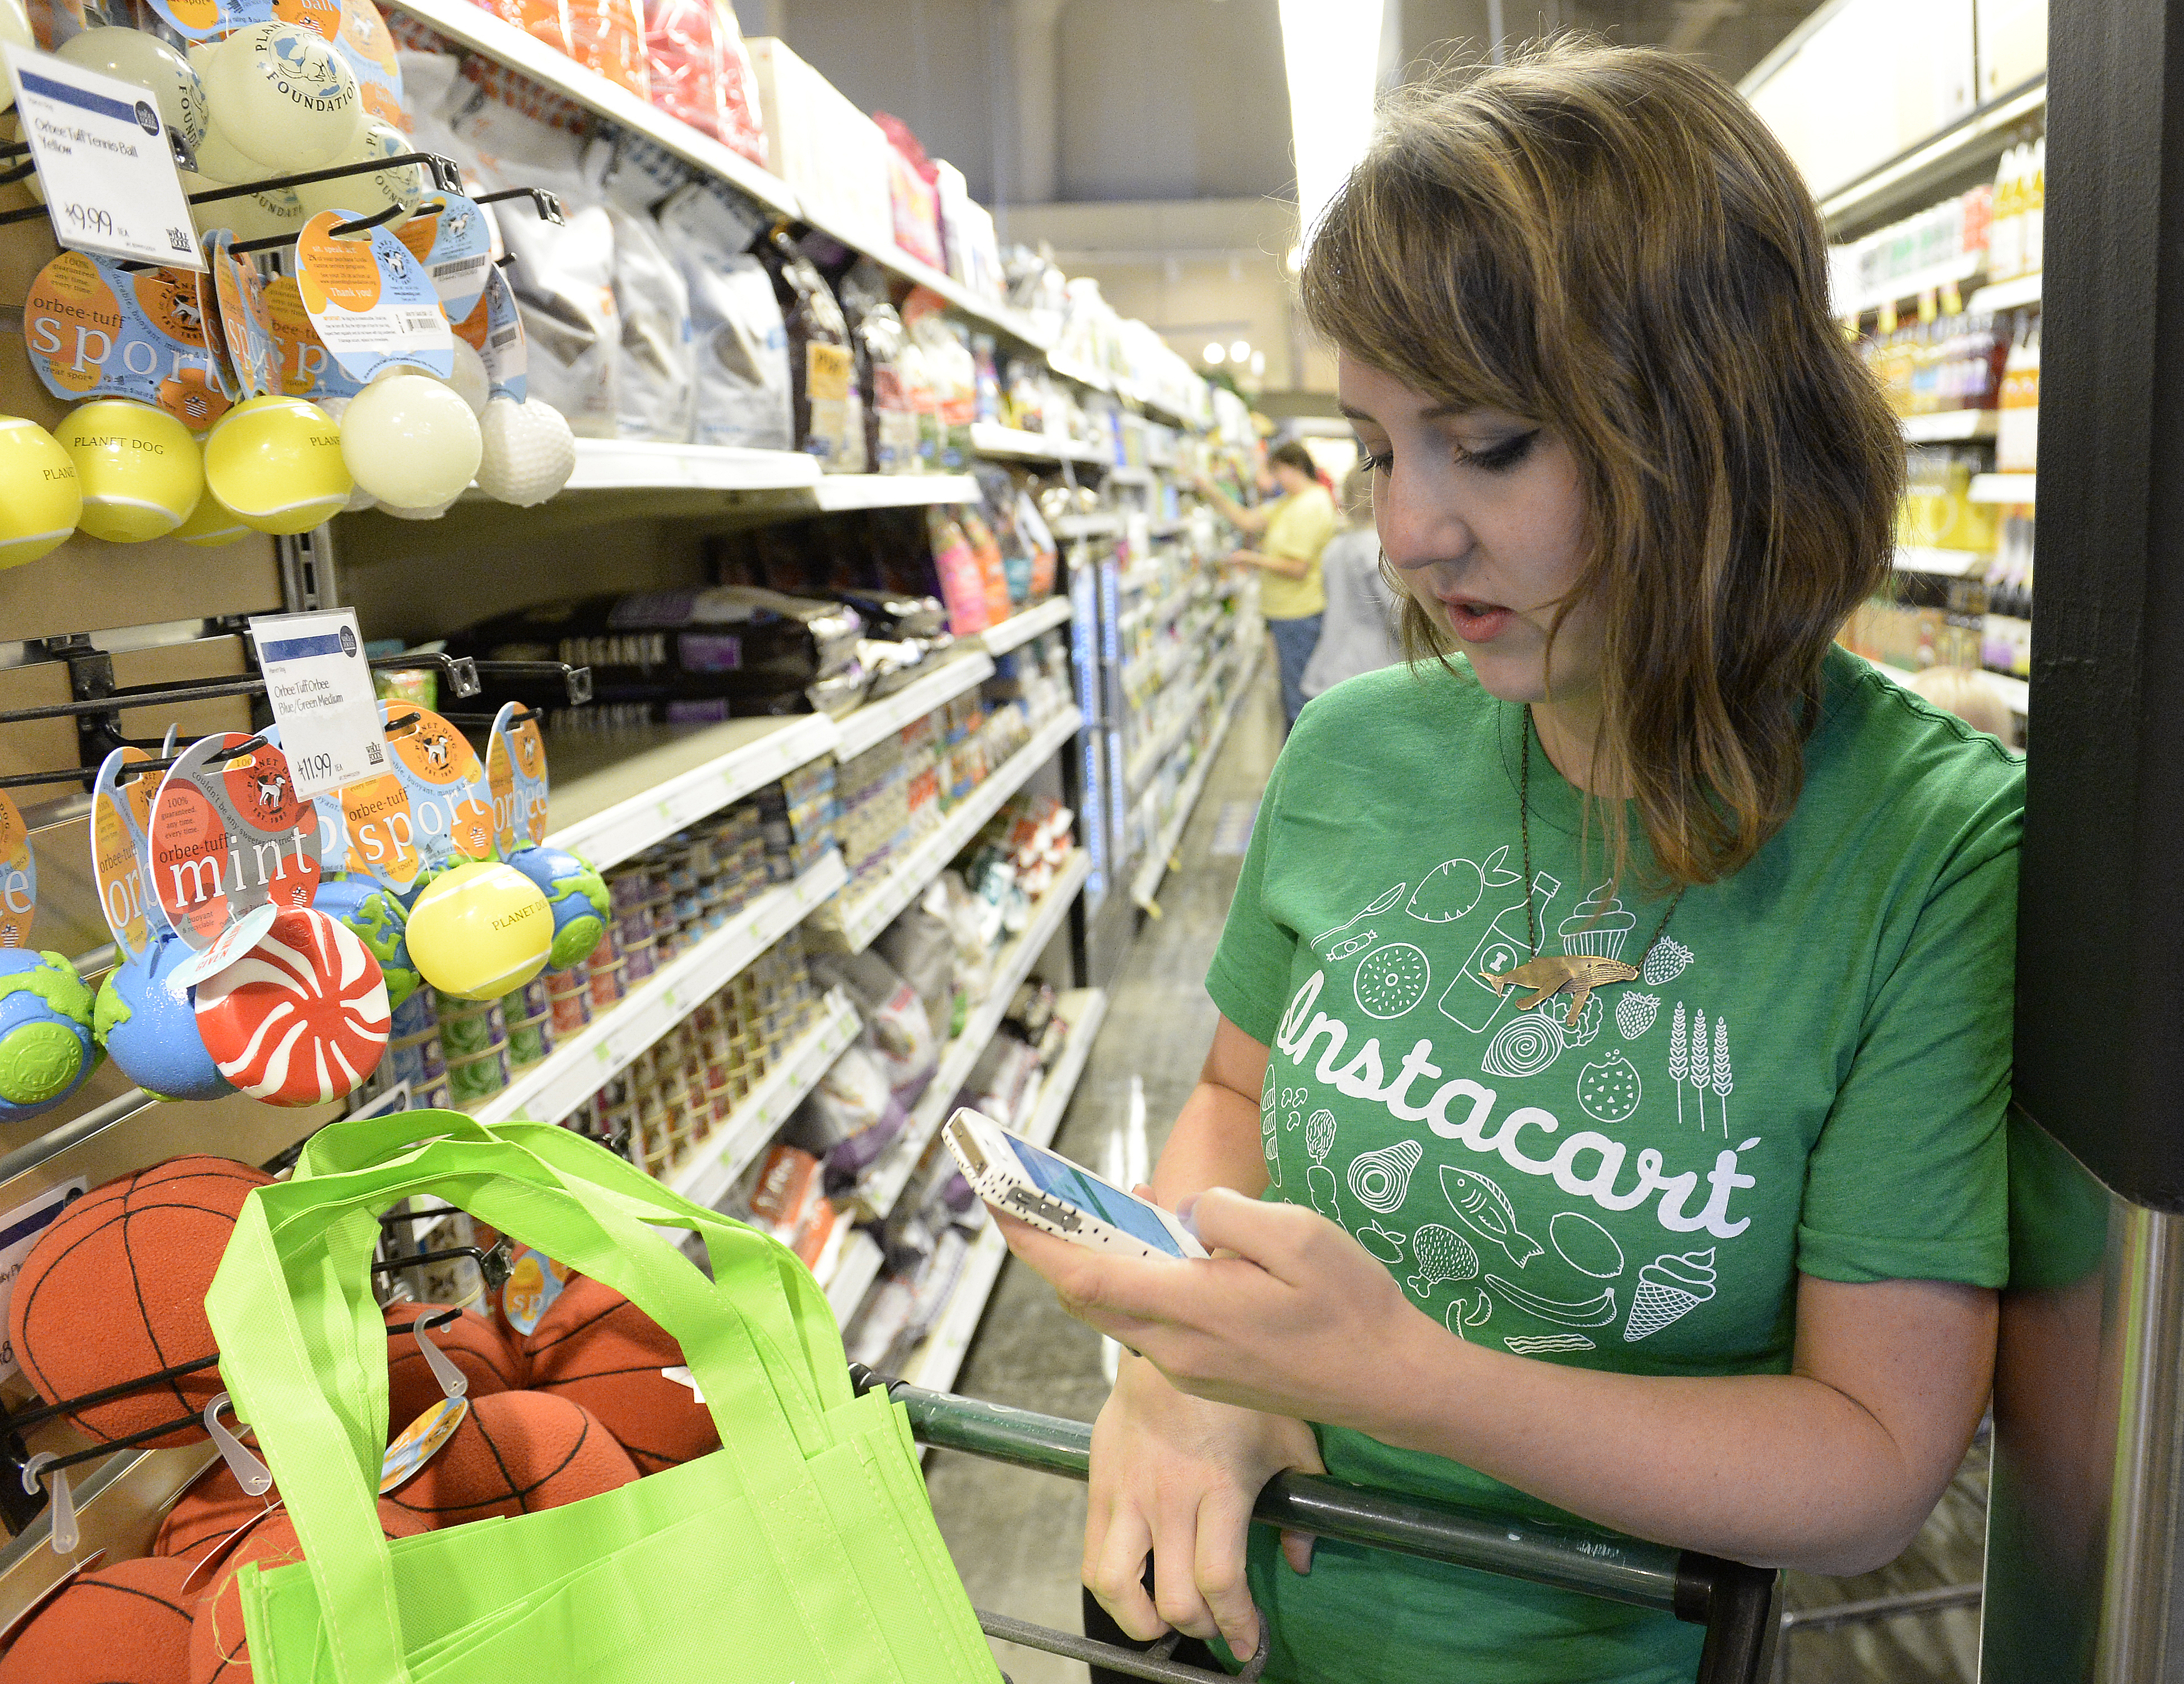 Instacart is cutting worker pay again in at least four